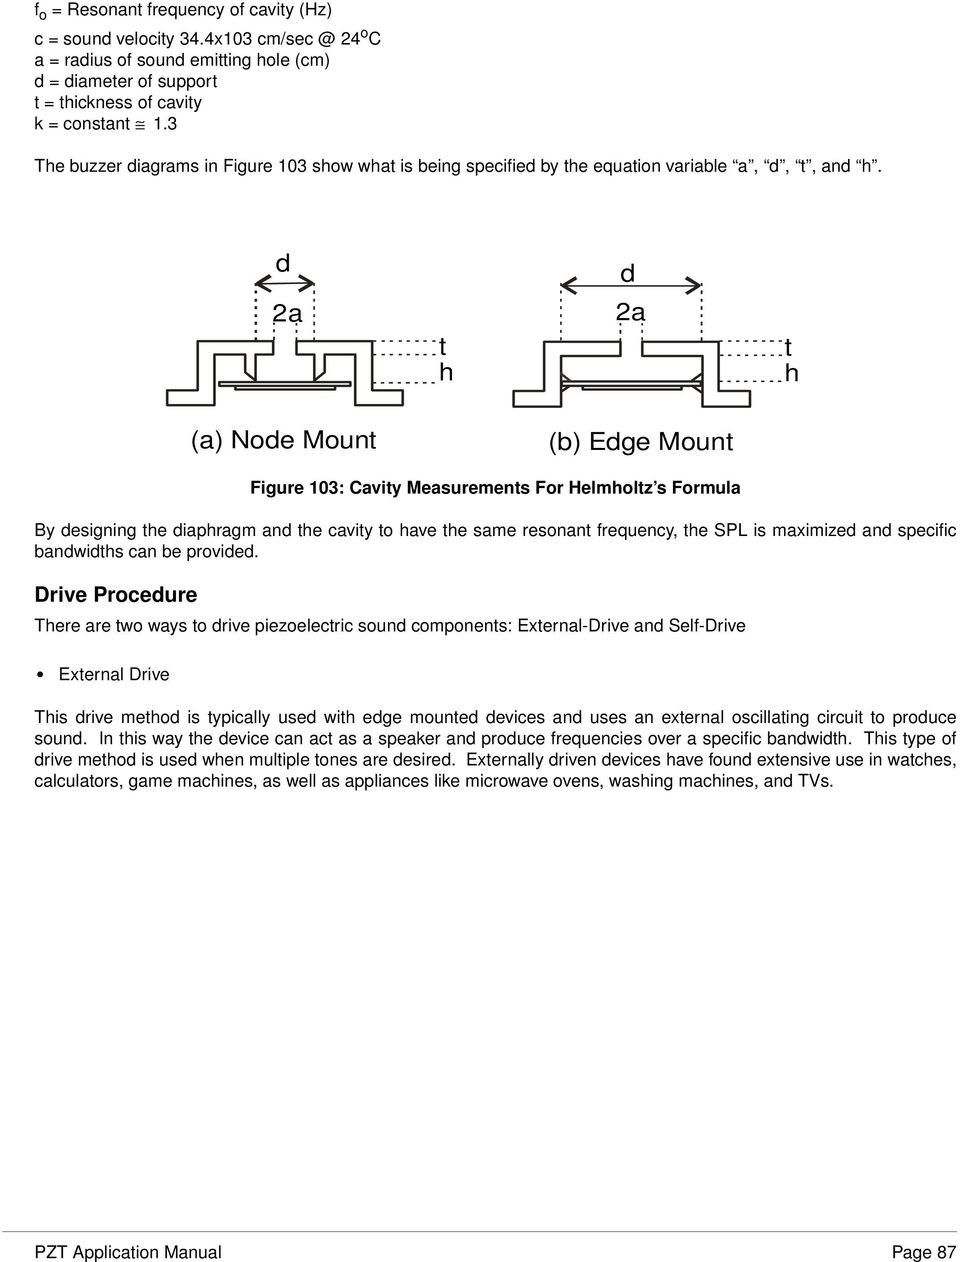 Piezoelectric Sound Components Pdf Sounders Buzzers Are Prepared By D 2a T H A Node Mount B Edge